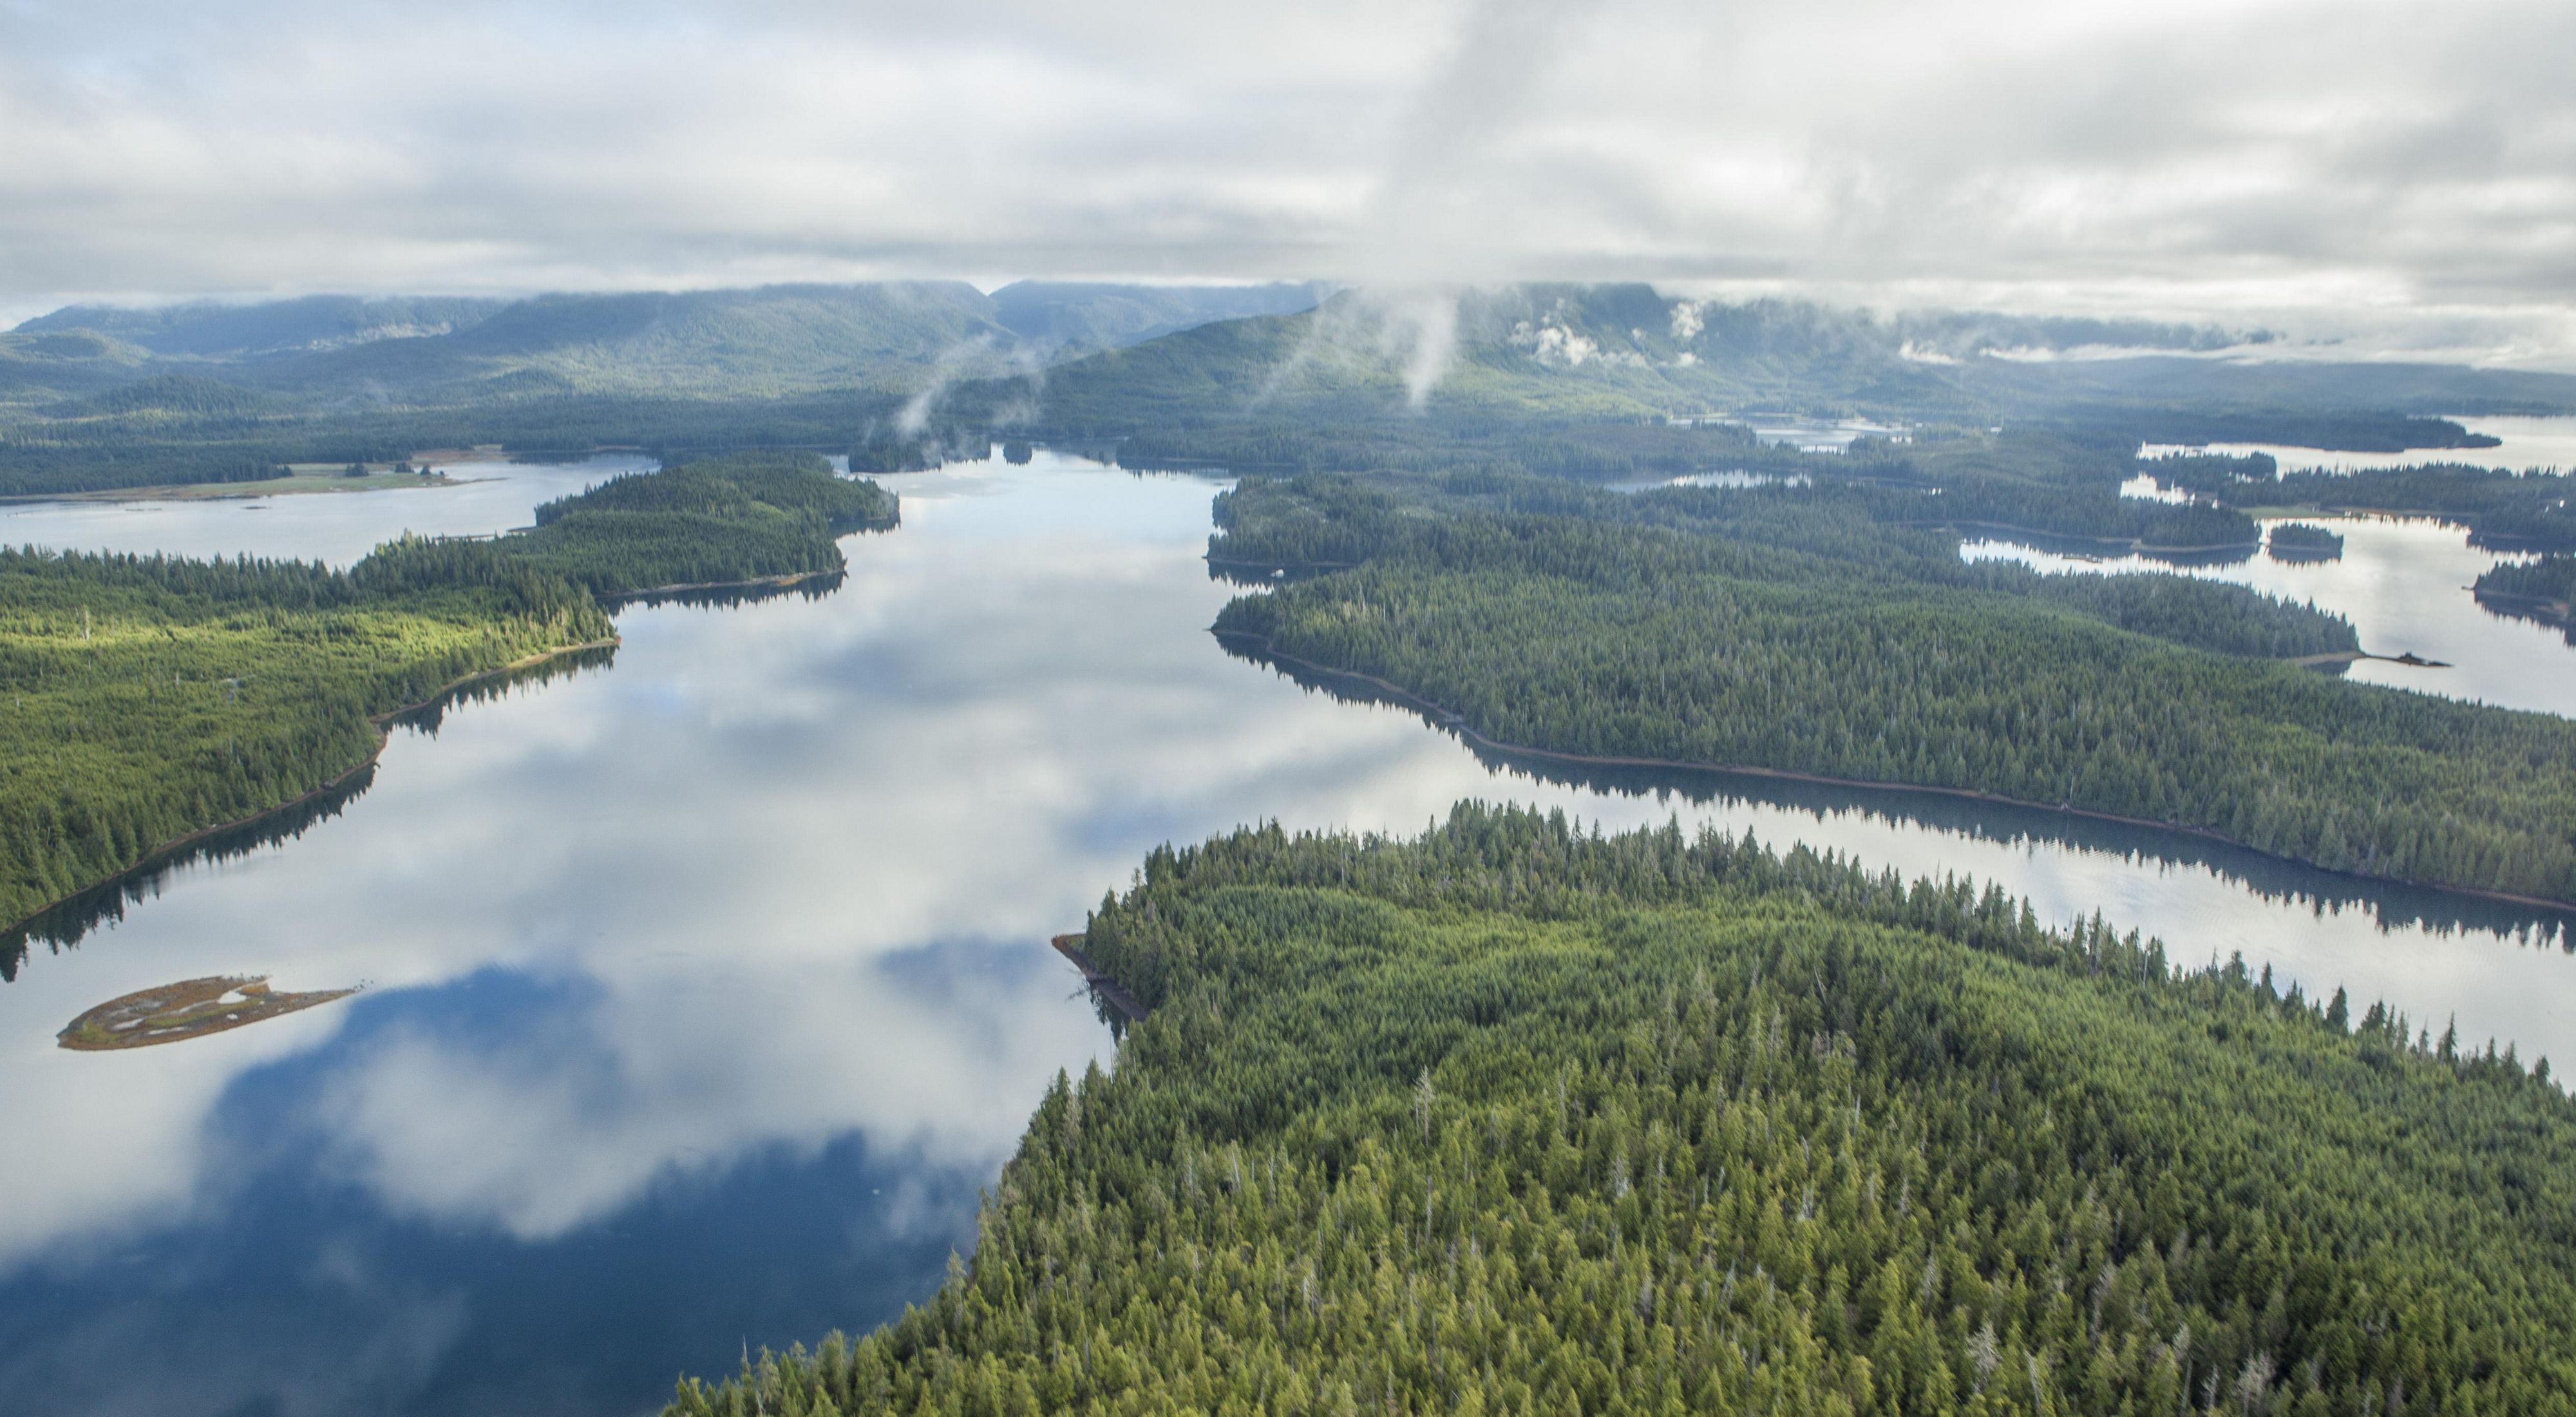 Aerial view of Alaska's Tongass National Forest.